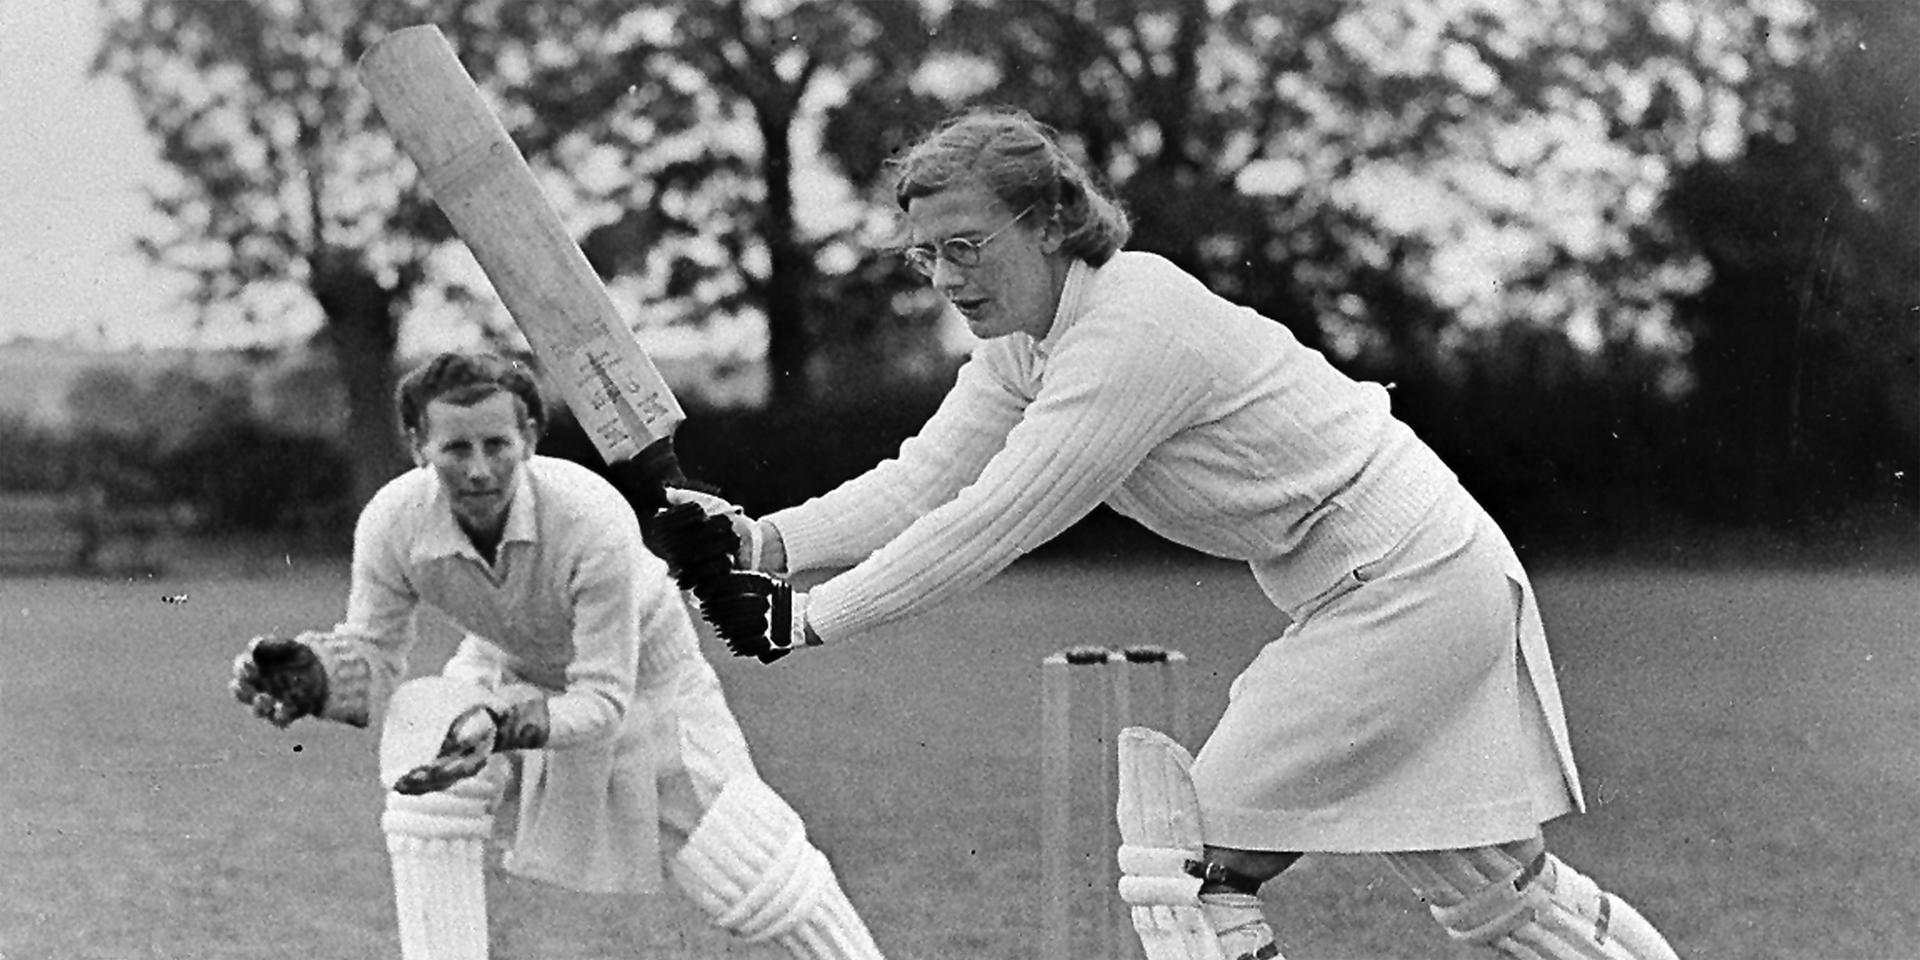 Auxiliary Territorial Service cricket match, 1943